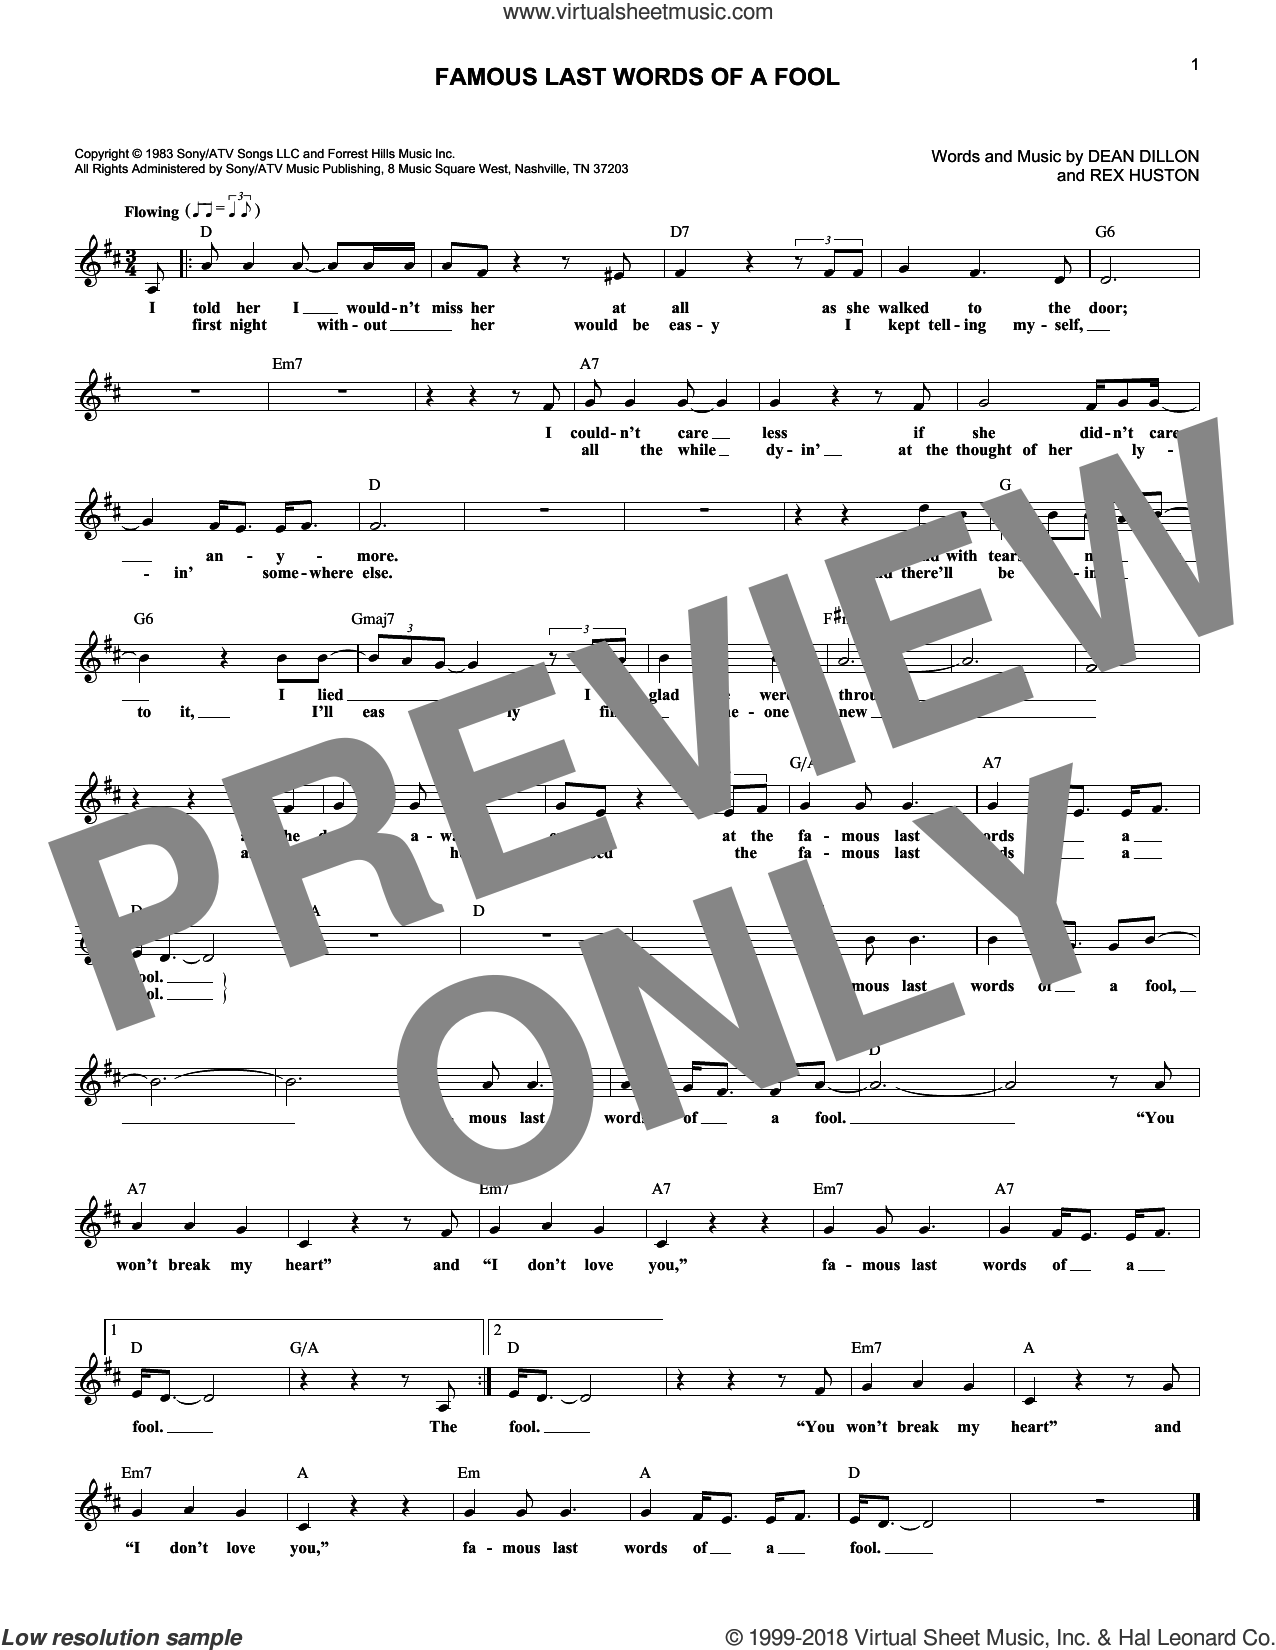 Famous Last Words Of A Fool sheet music for voice and other instruments (fake book) by George Strait, Dean Dillon and Rex Huston, intermediate. Score Image Preview.